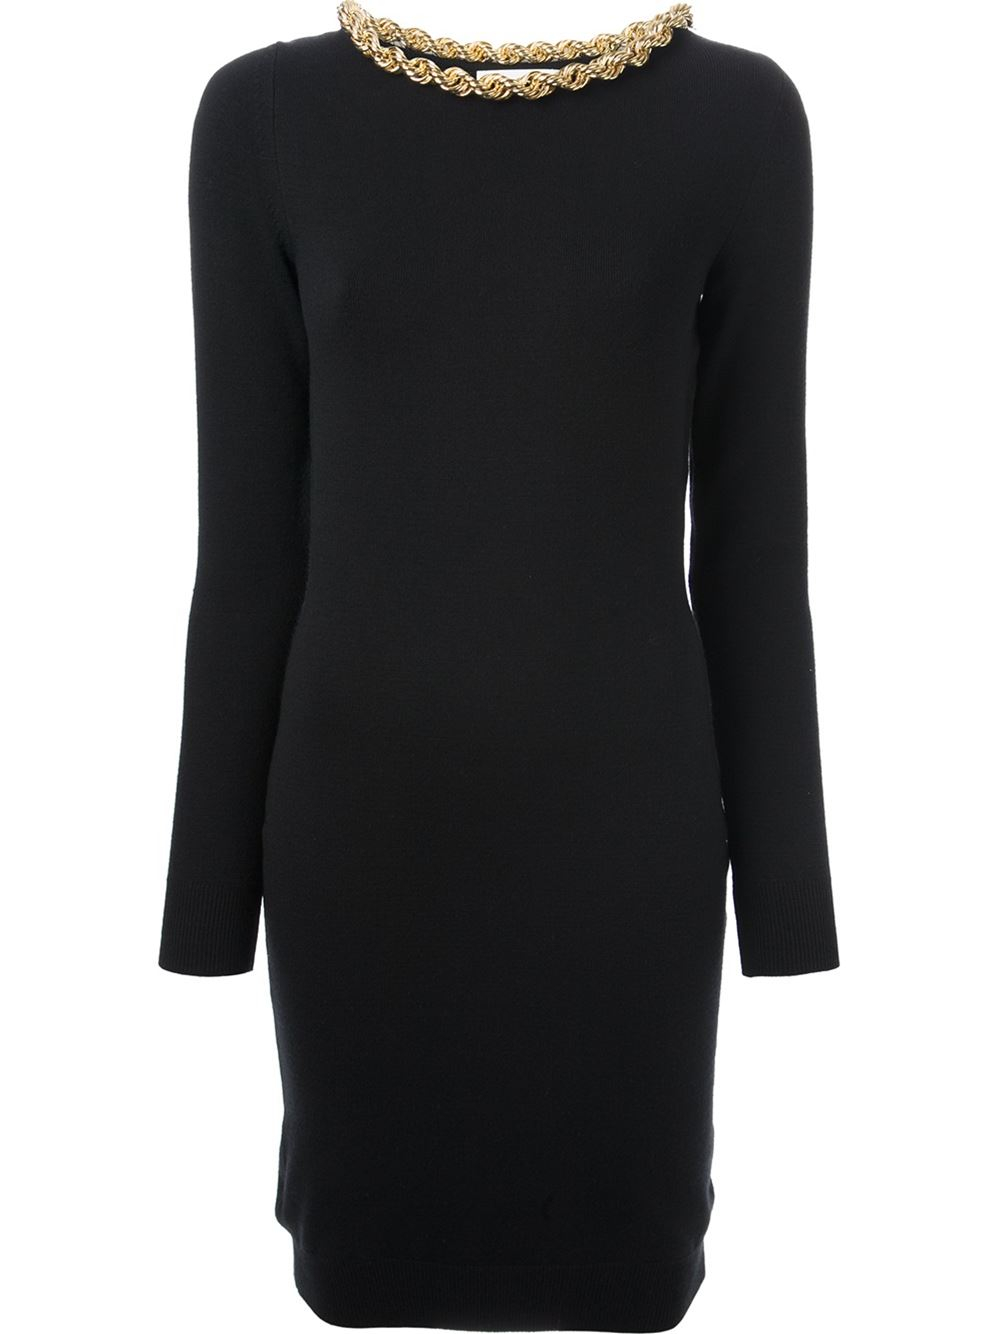 Lyst Moschino Chain Embellished Sweater Dress In Black